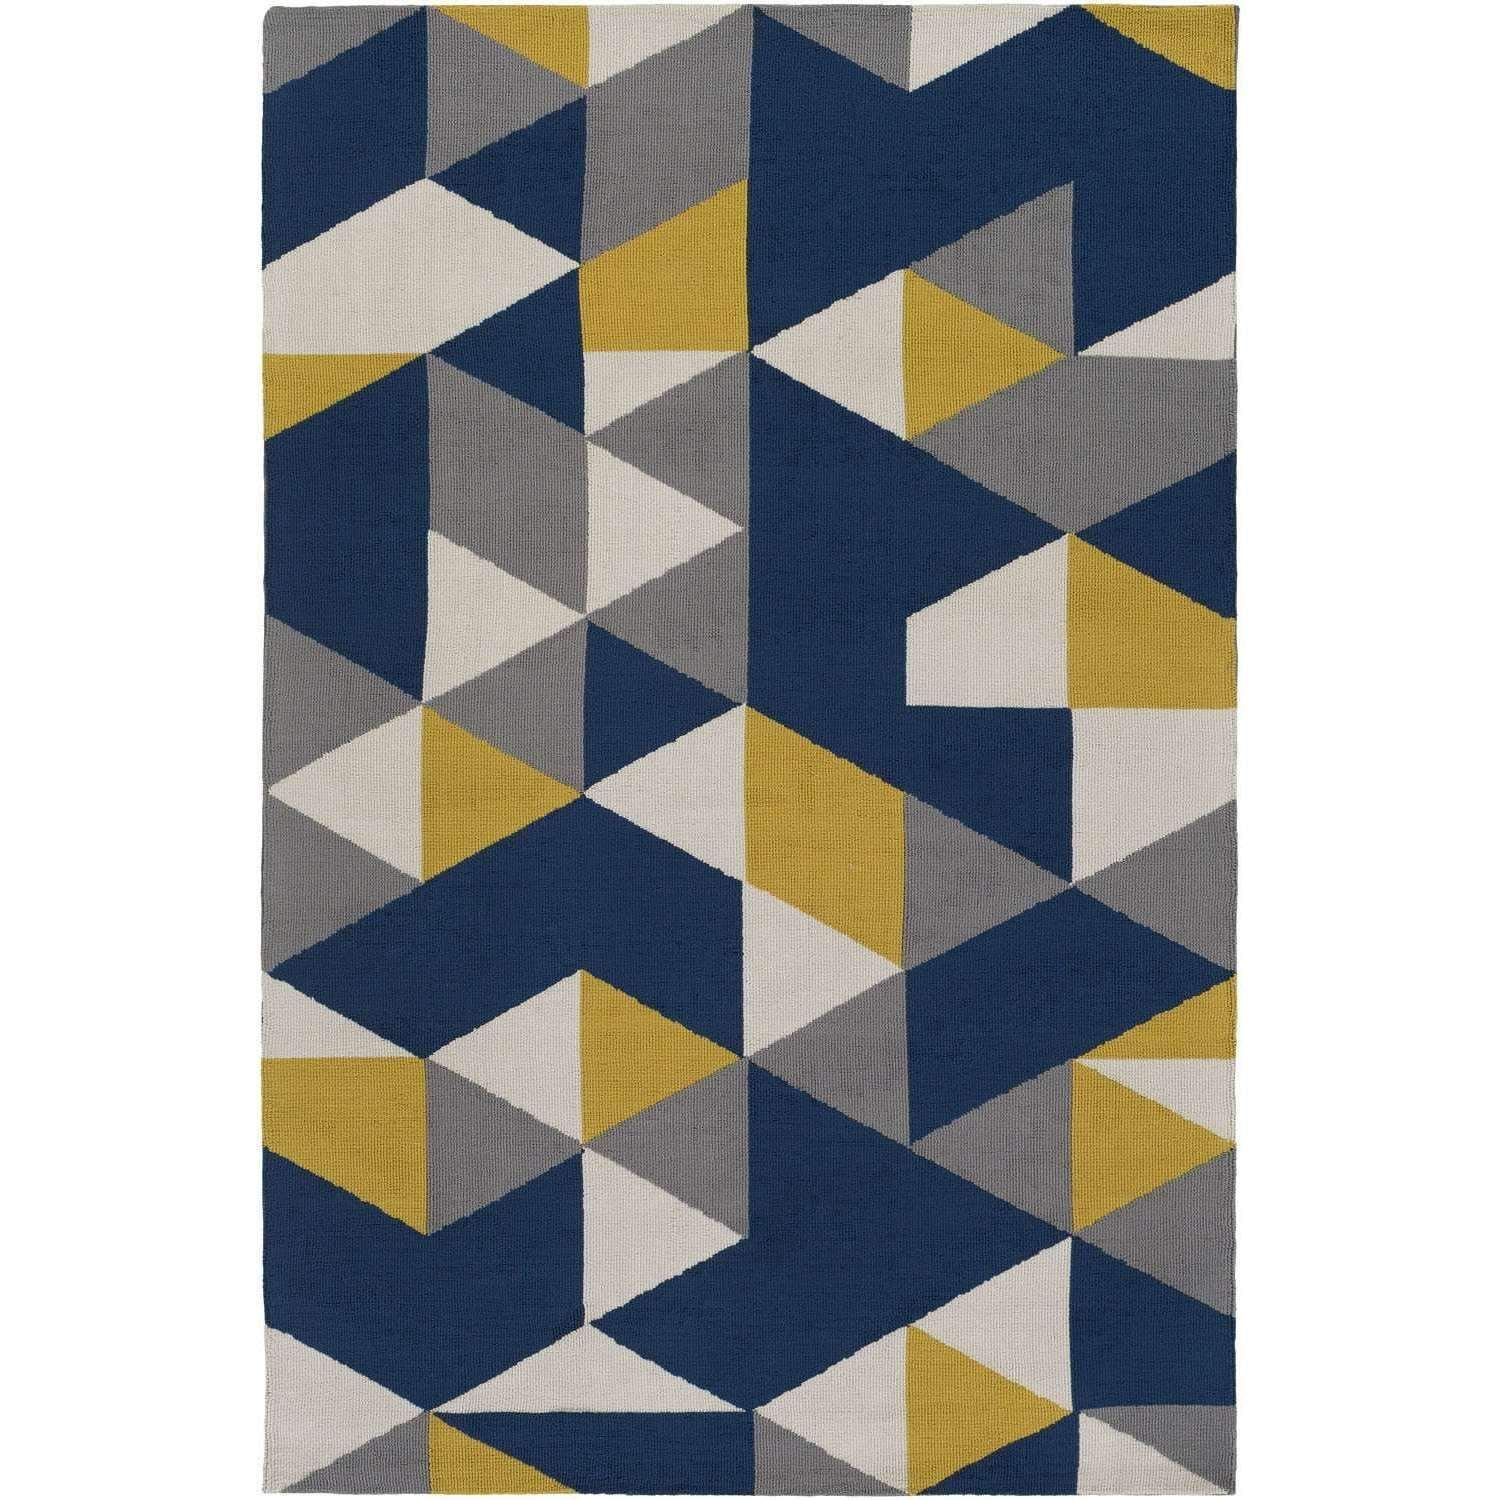 Joan Joan 6087 Navy Blue Yellow Gray Contemporary Rug Blue And